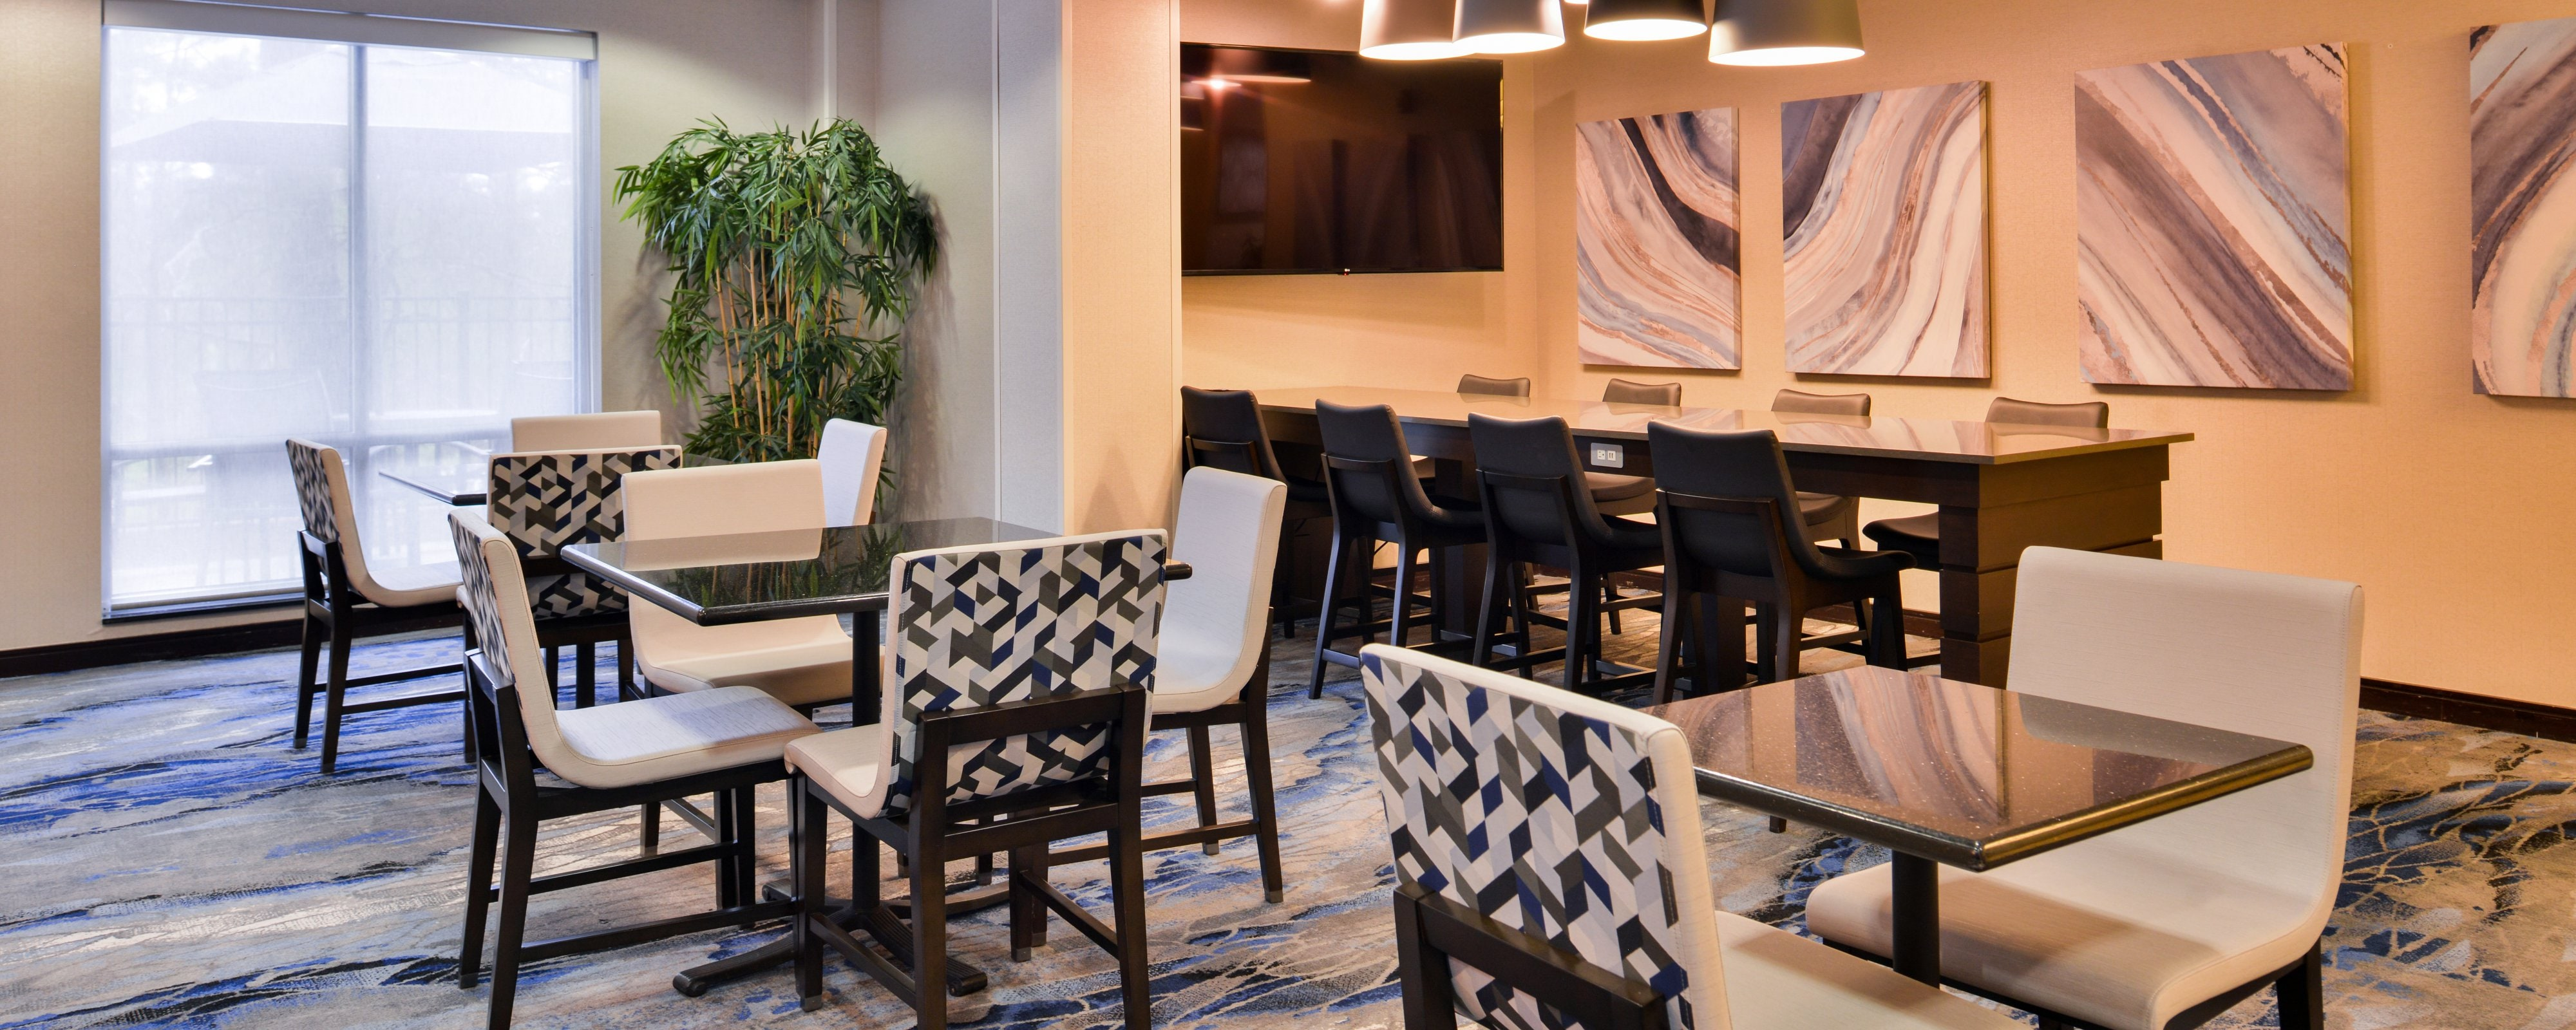 Raleigh Nc Hotels With Free Breakfast